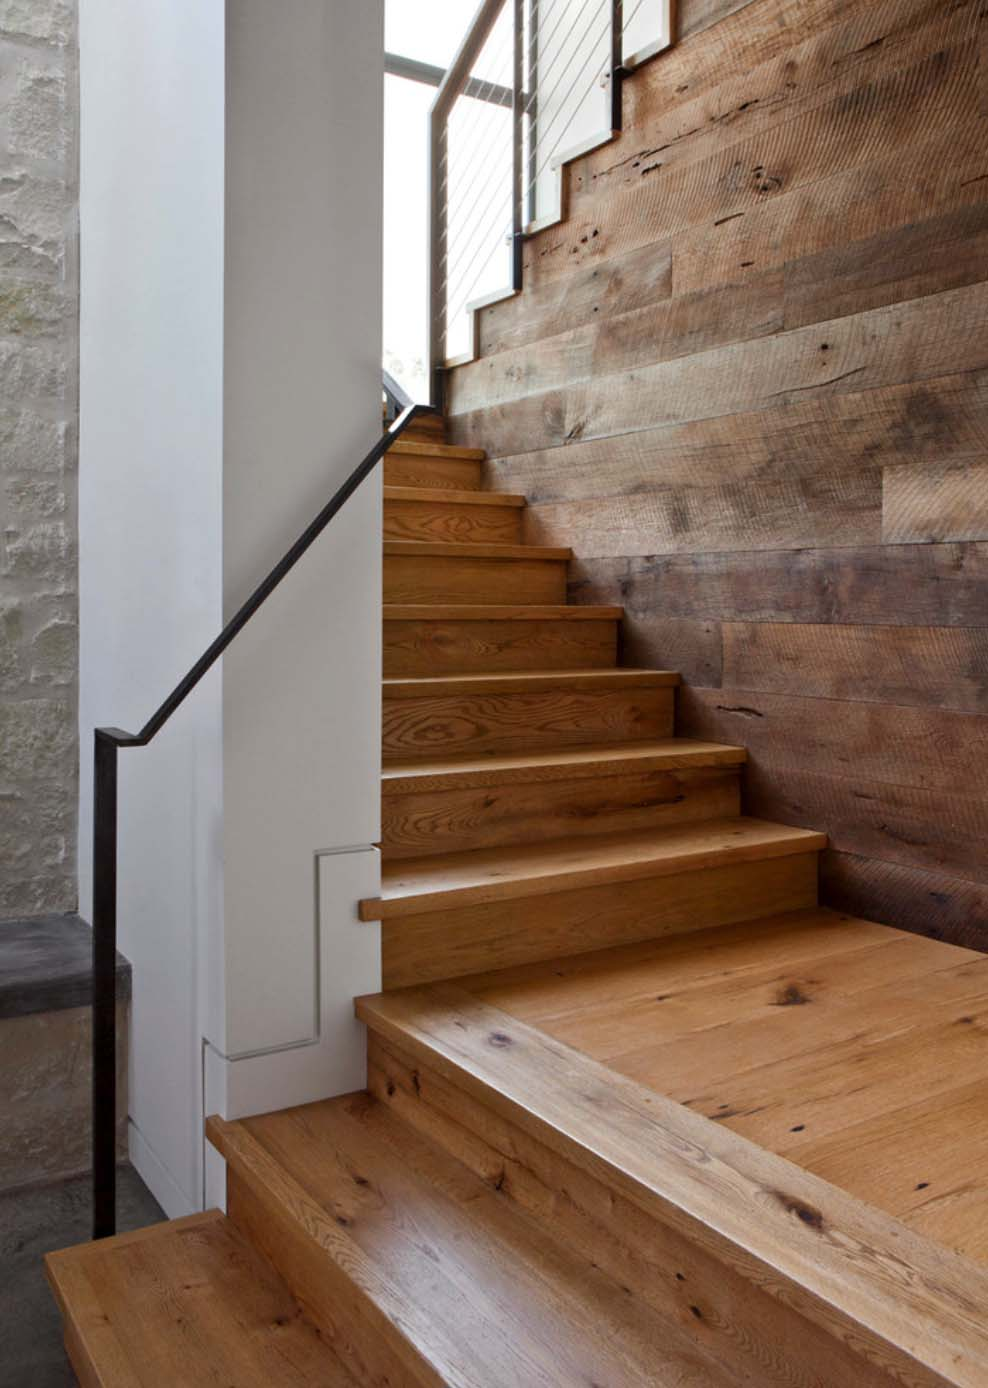 Beach pretty house tour-A beauty of a house on Horseshoe Bay-Stair Case.jpg